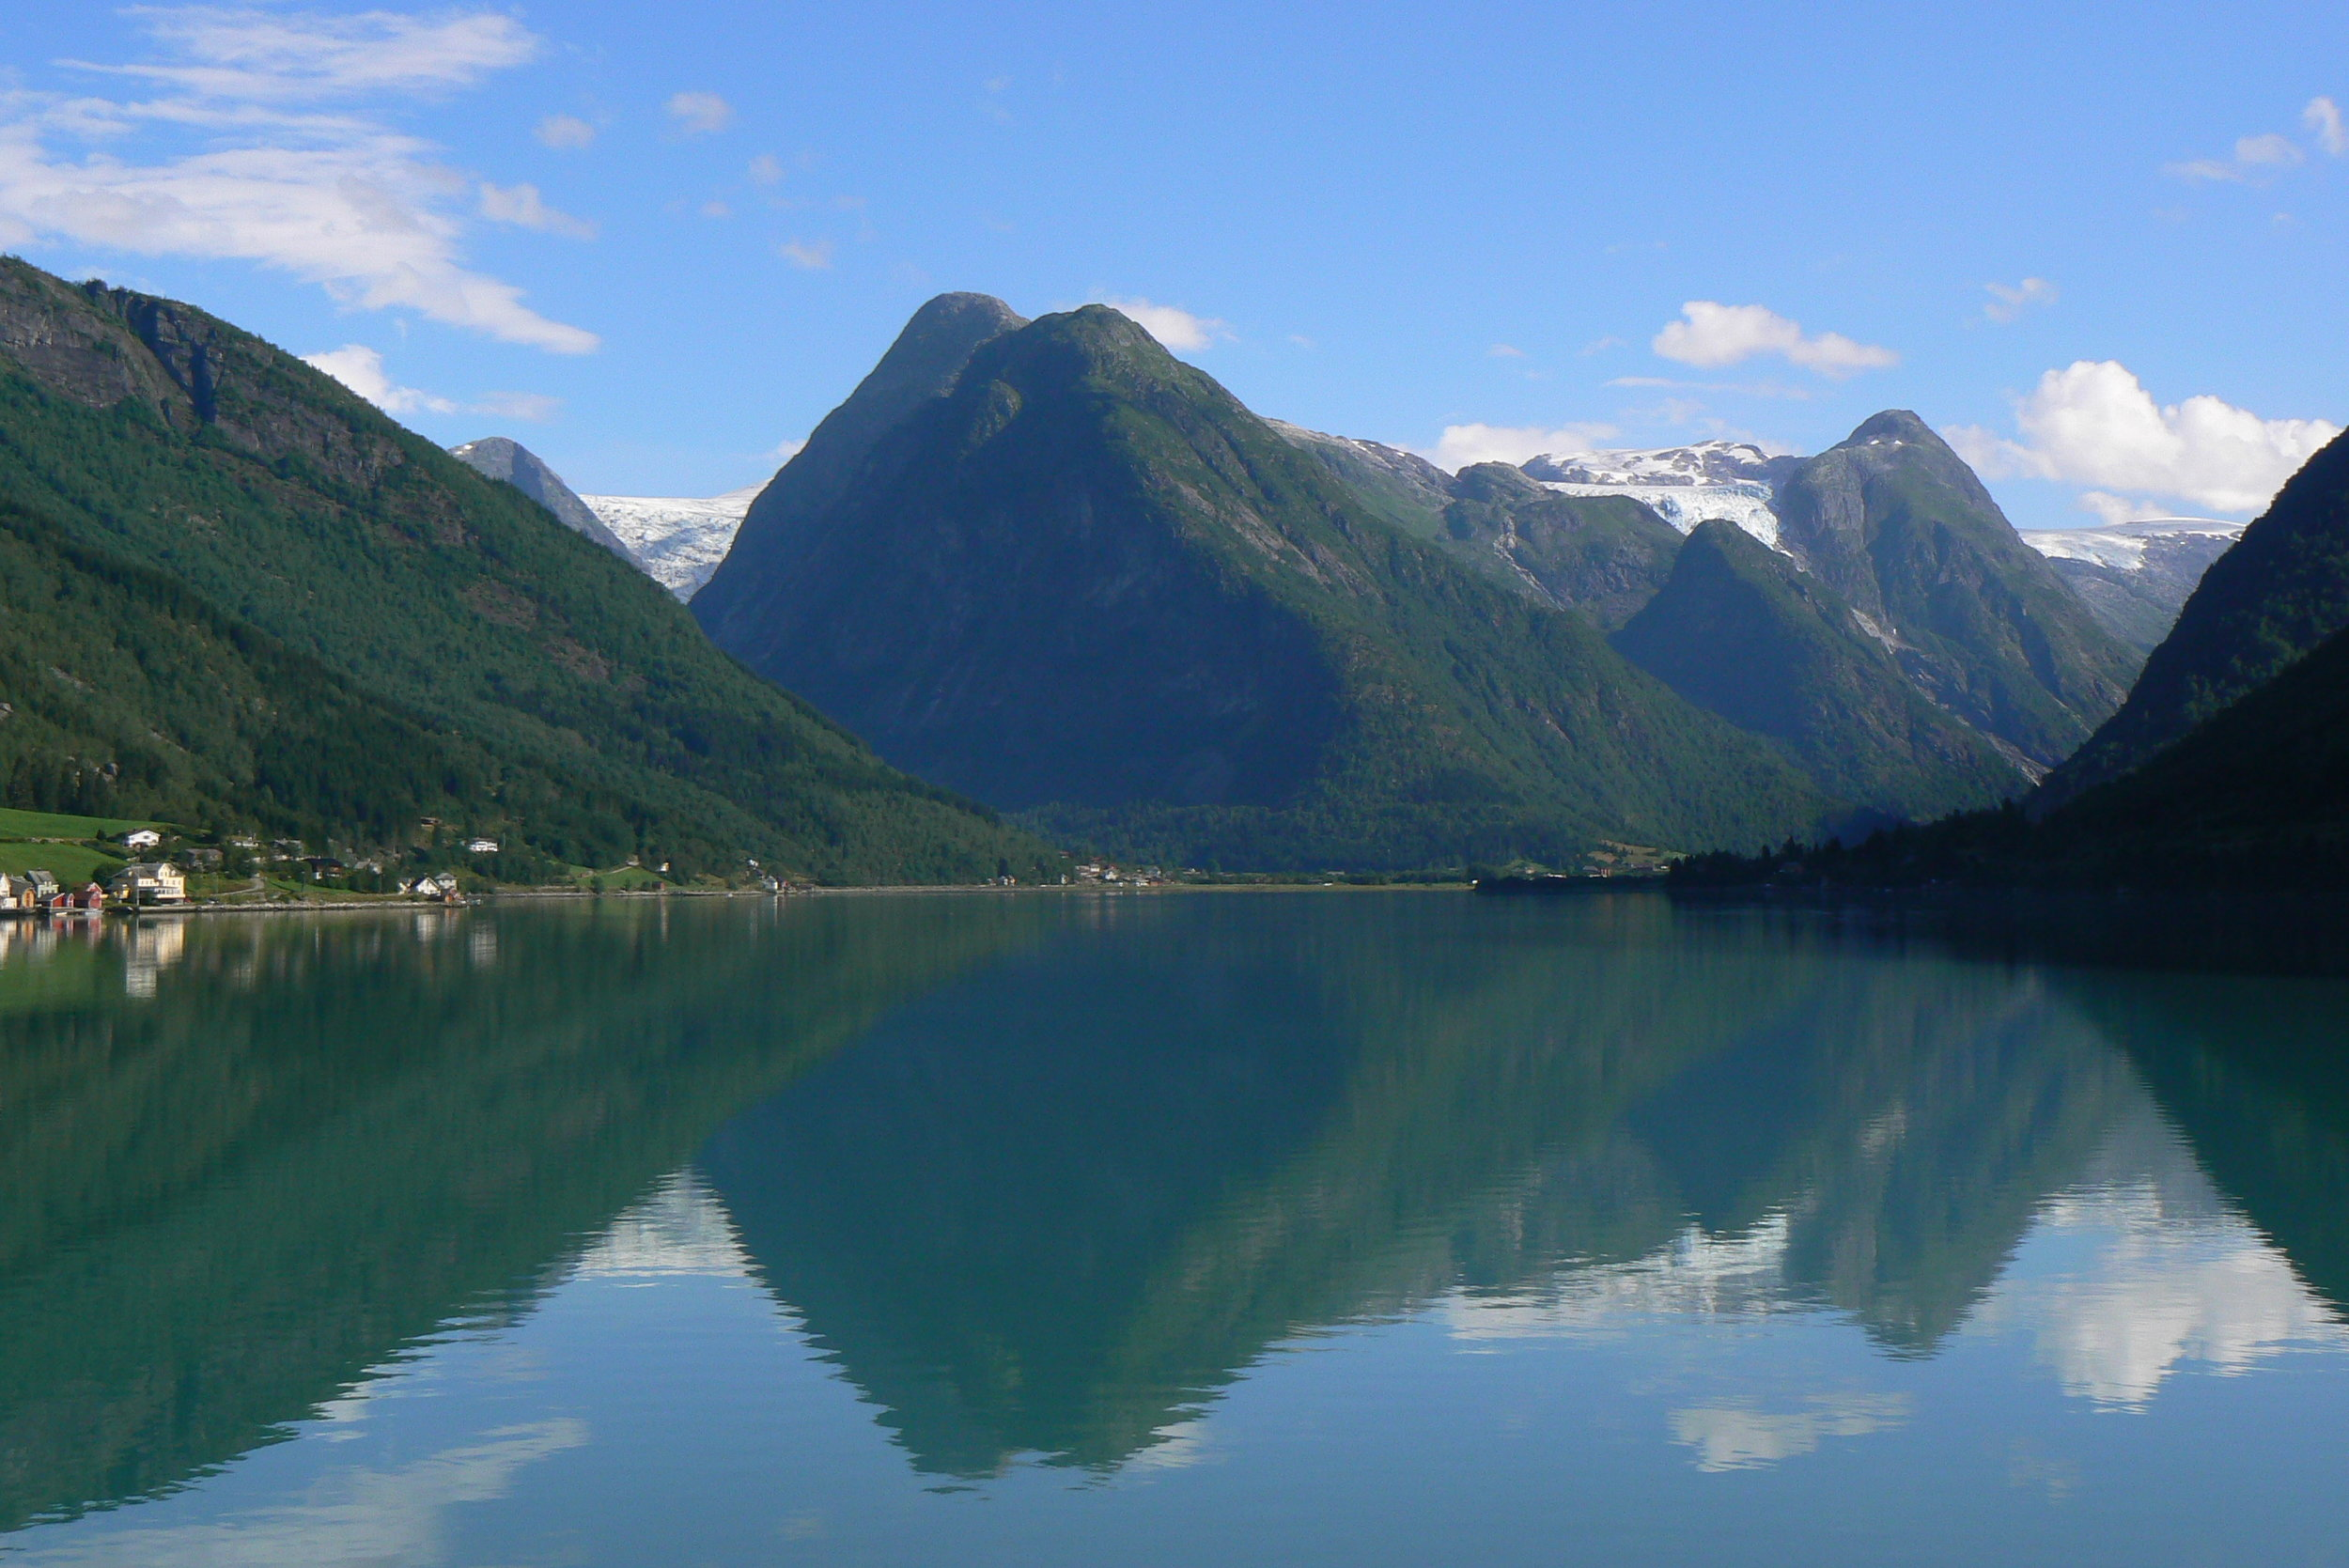 Fjord_reflections.jpg